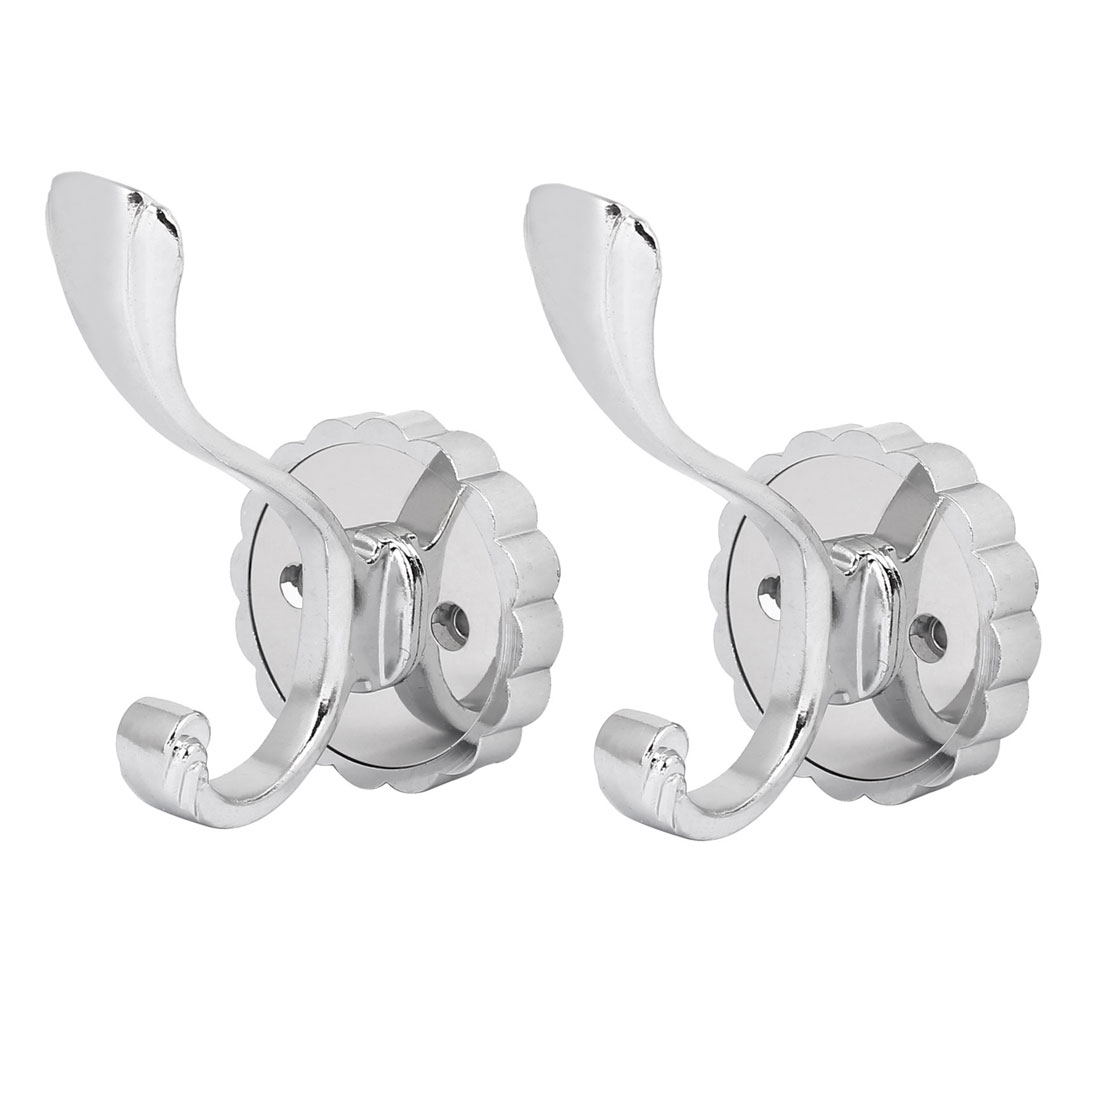 Home Bathroom Door Wall Mount Double Hook Robe Coat Hanger 2PCS